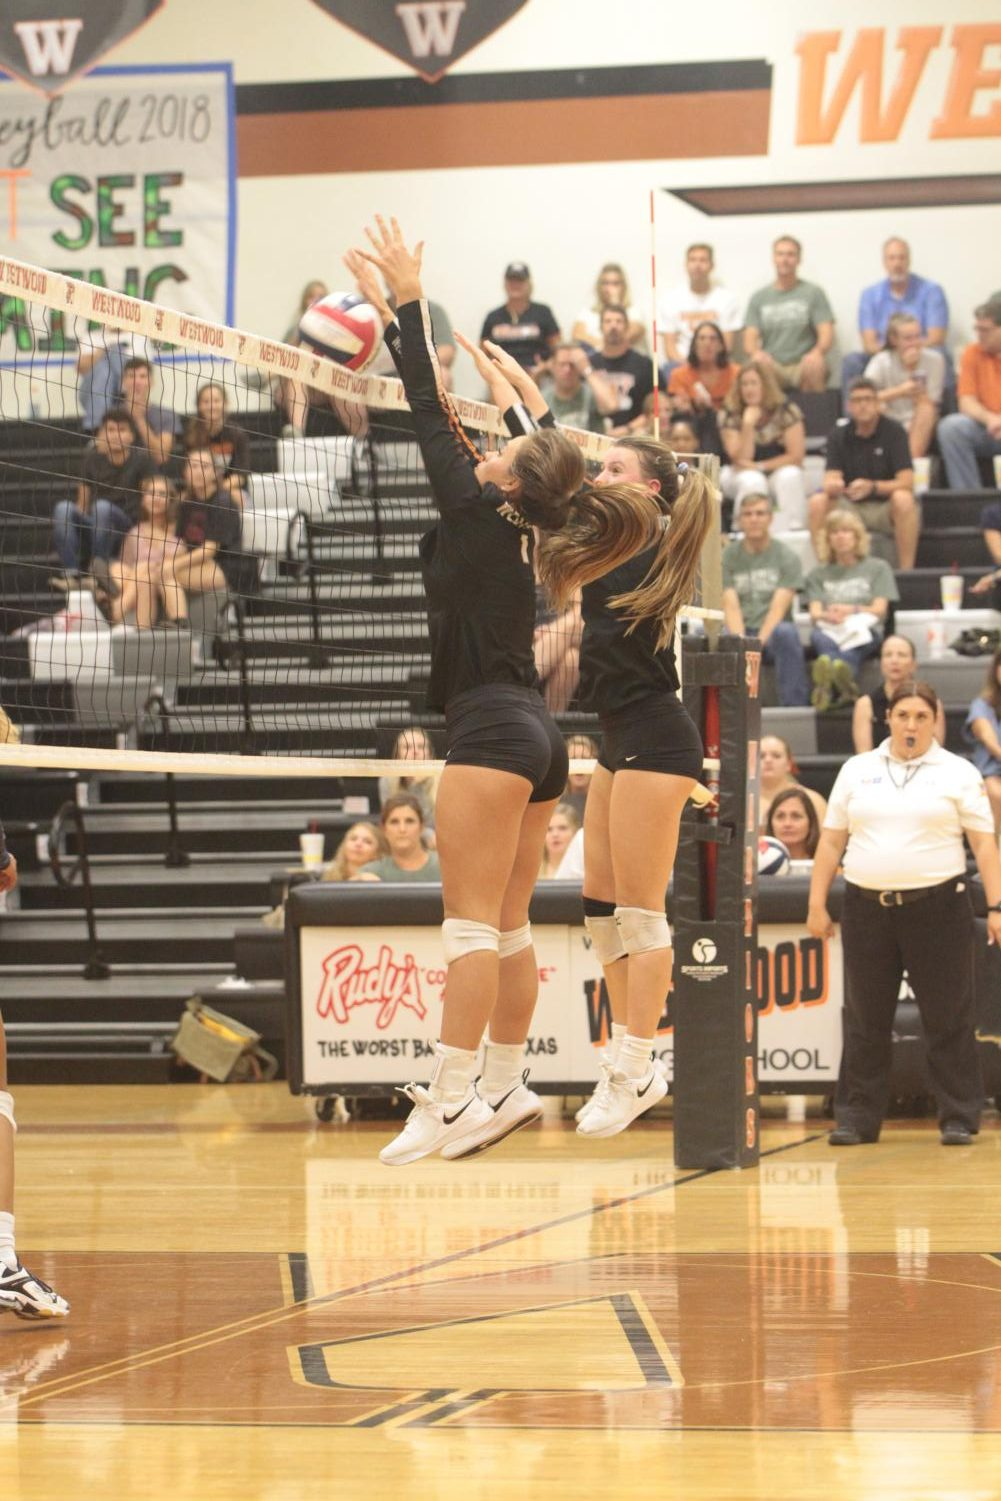 Abby+Gregorczyk+%2721+and+Kenzie+Beckham+%2721+jump+up+to+block+the+ball+from+entering+their+half+of+the+court.